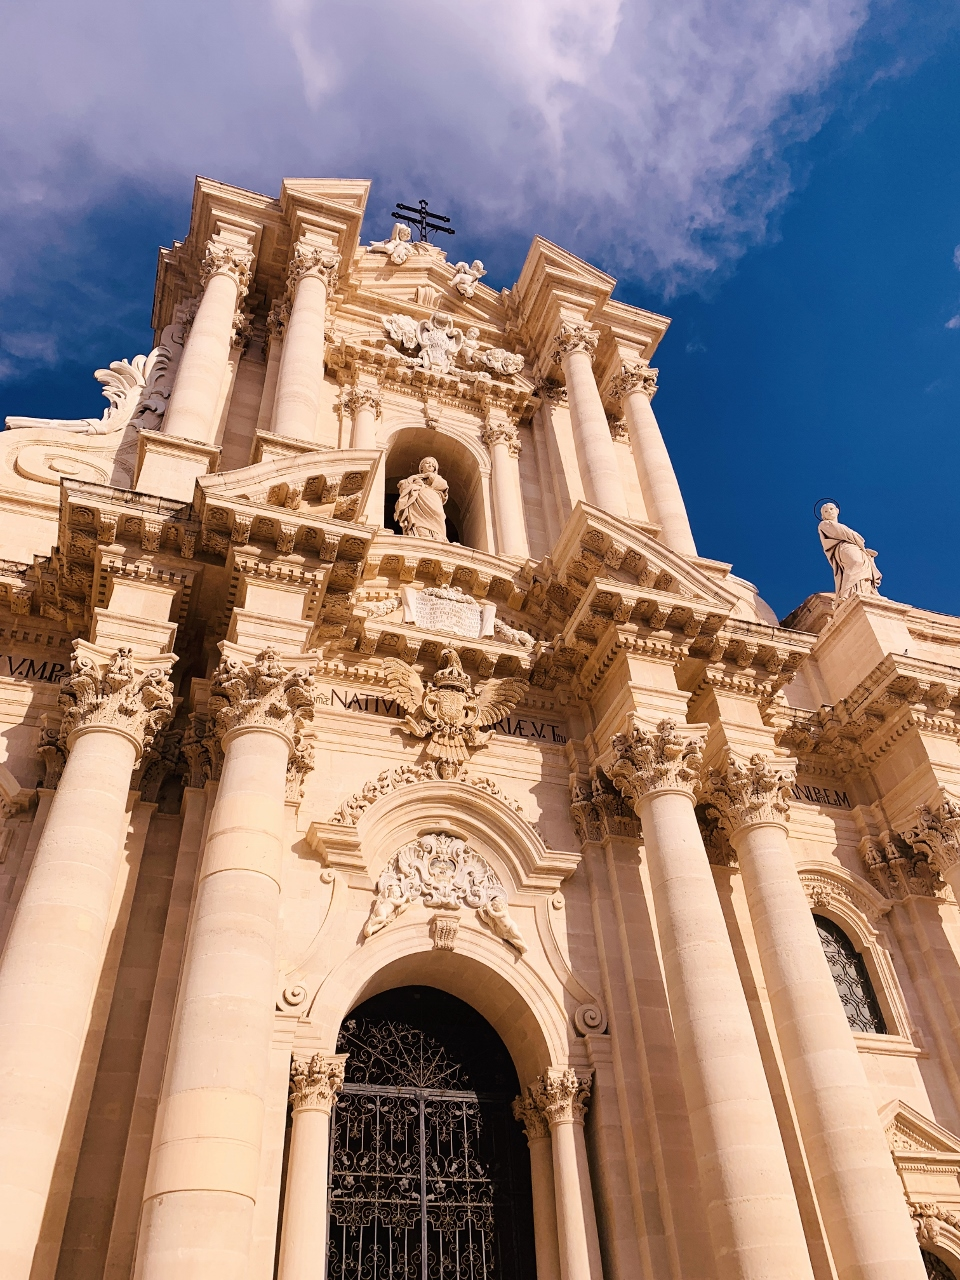 Travels to Sicily – Noto, Siracusa, Ragusa & Agrigento (Part 2 of 3) Image 12